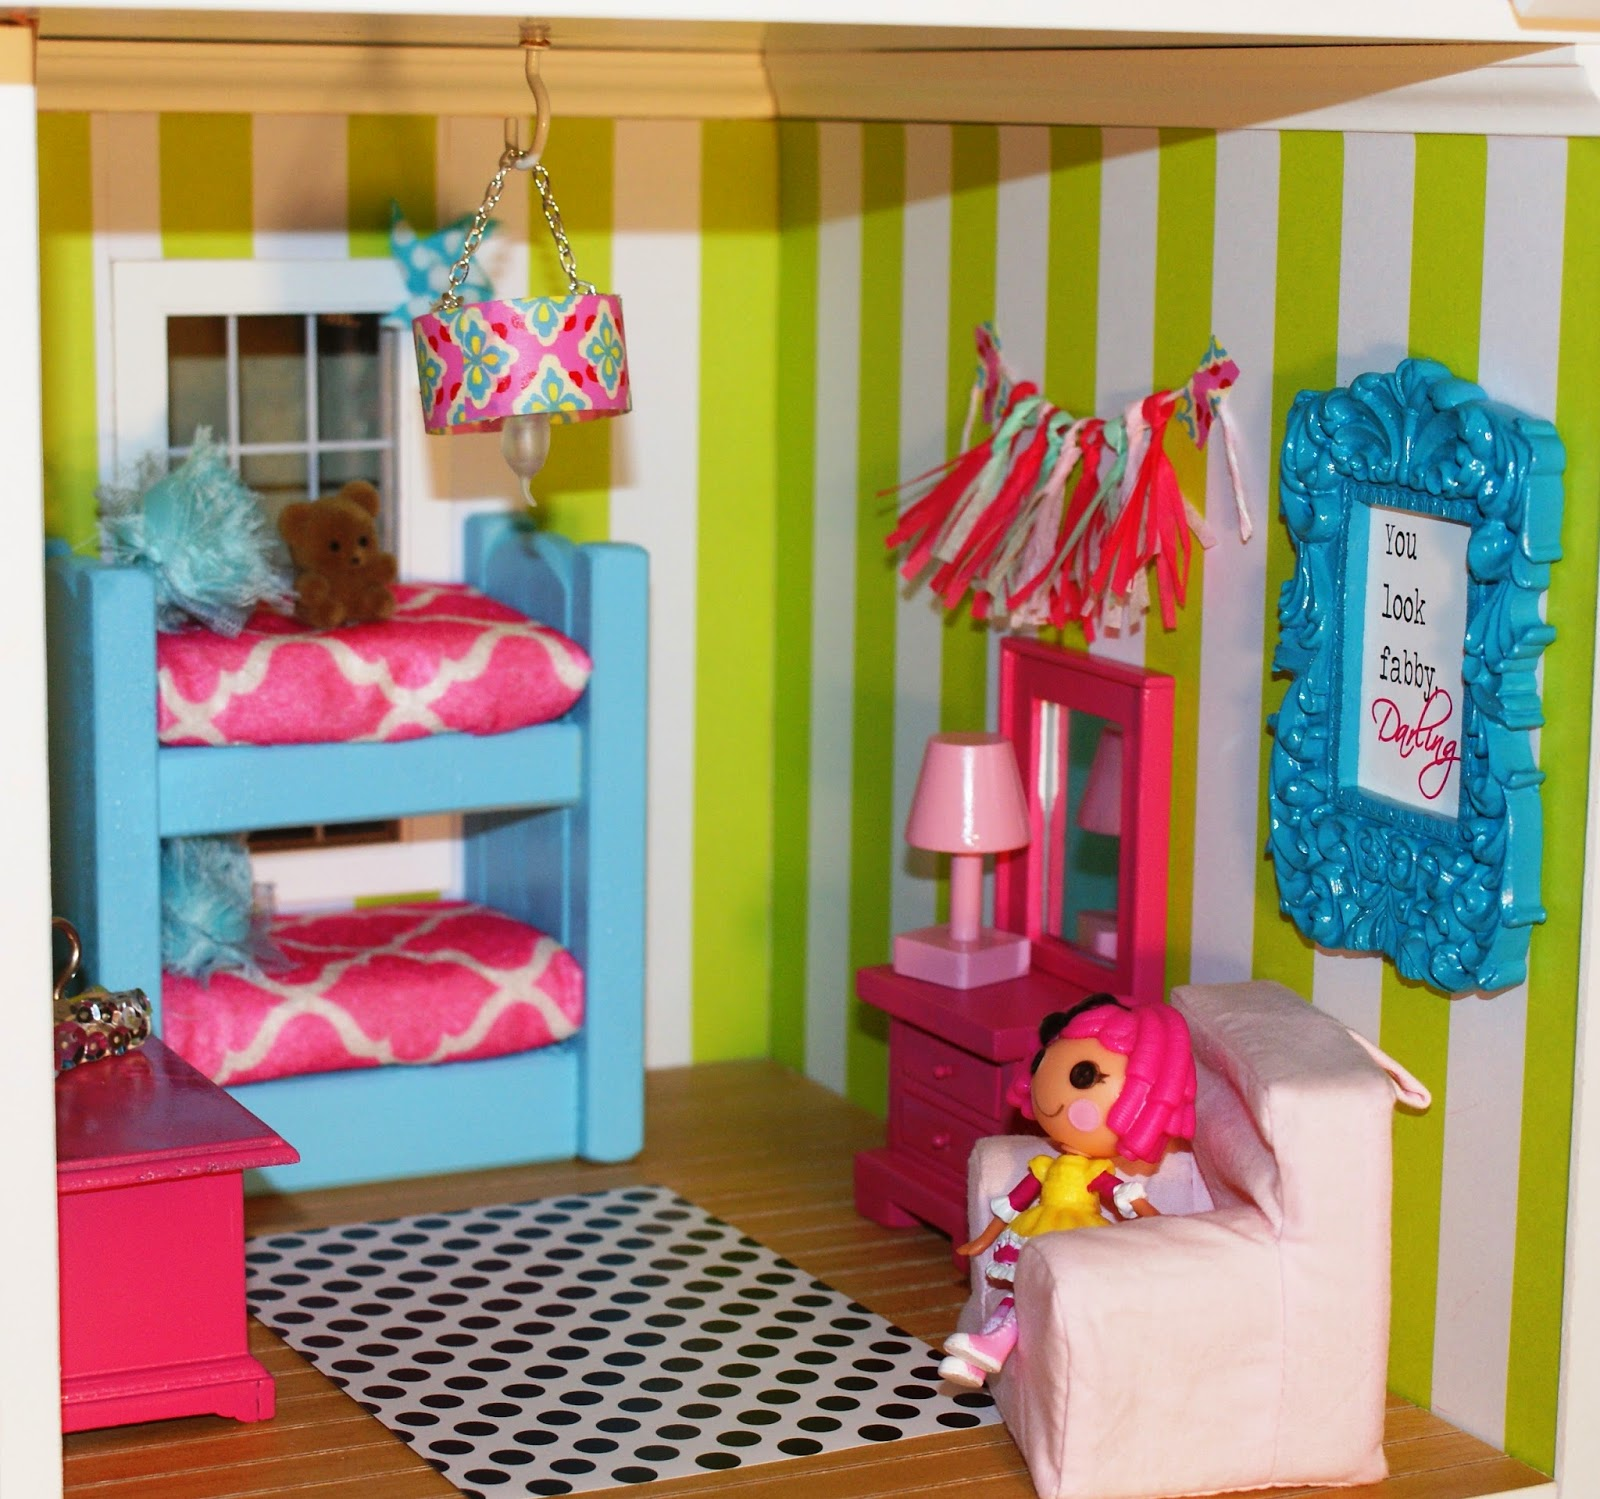 Pottery Barn Kids Doll High Chair Jessica Charles Chairs Paperdoll Designs The Dollhouse Makeover Girl 39s Room